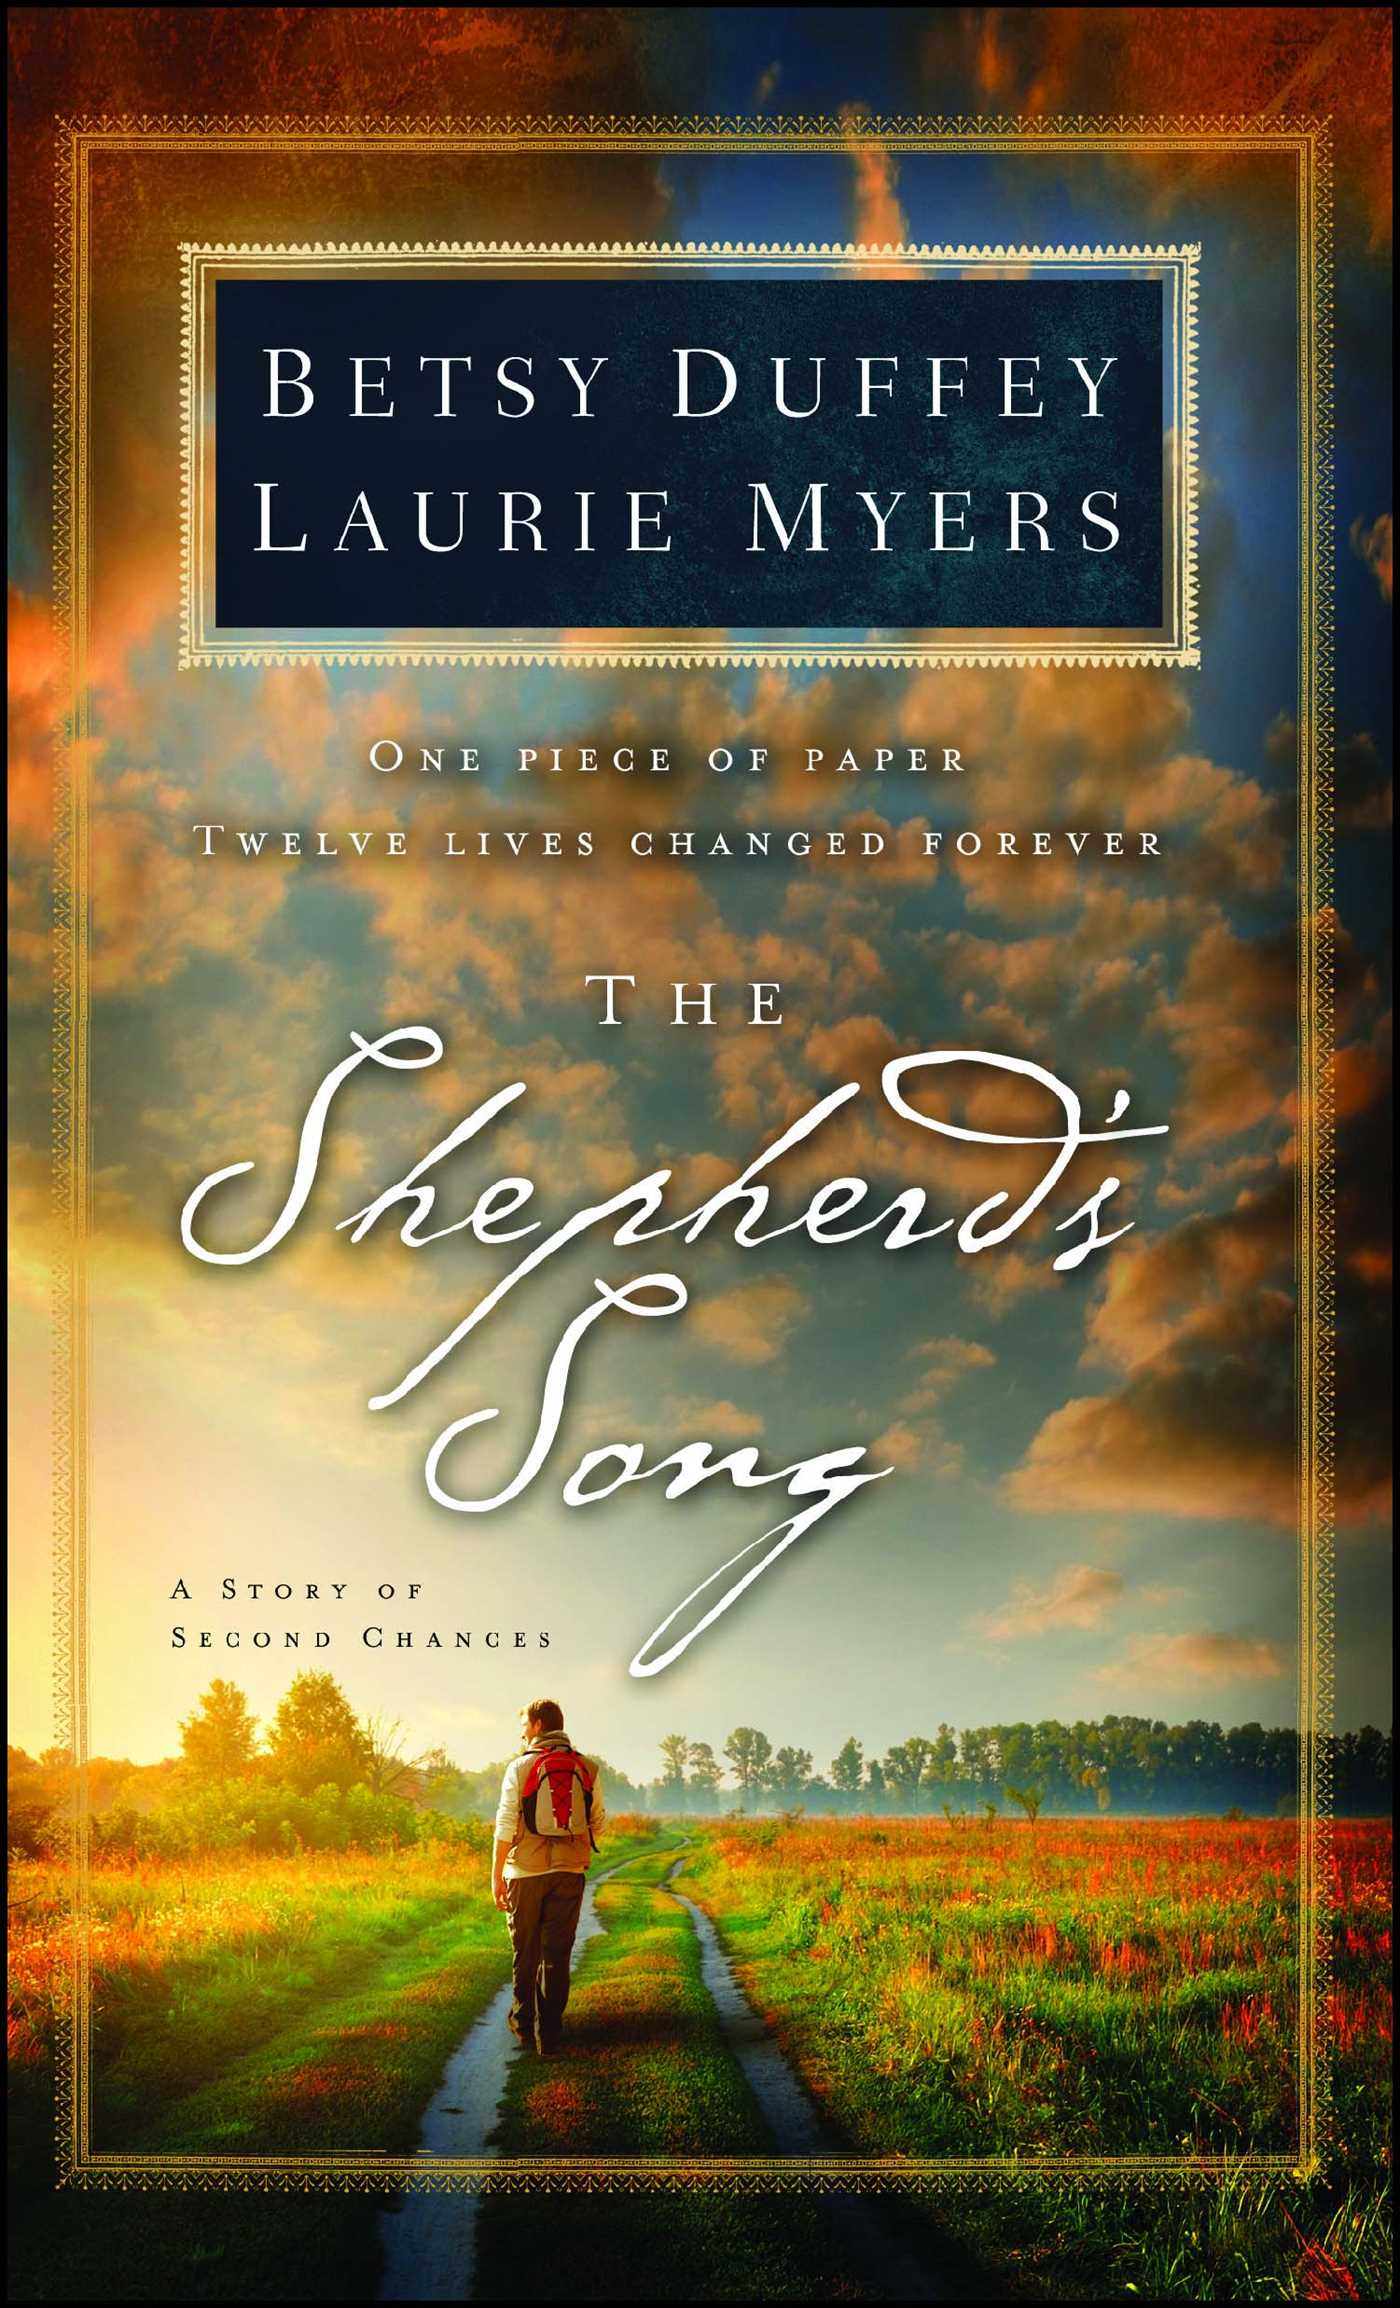 The shepherds song 9781501108037 hr